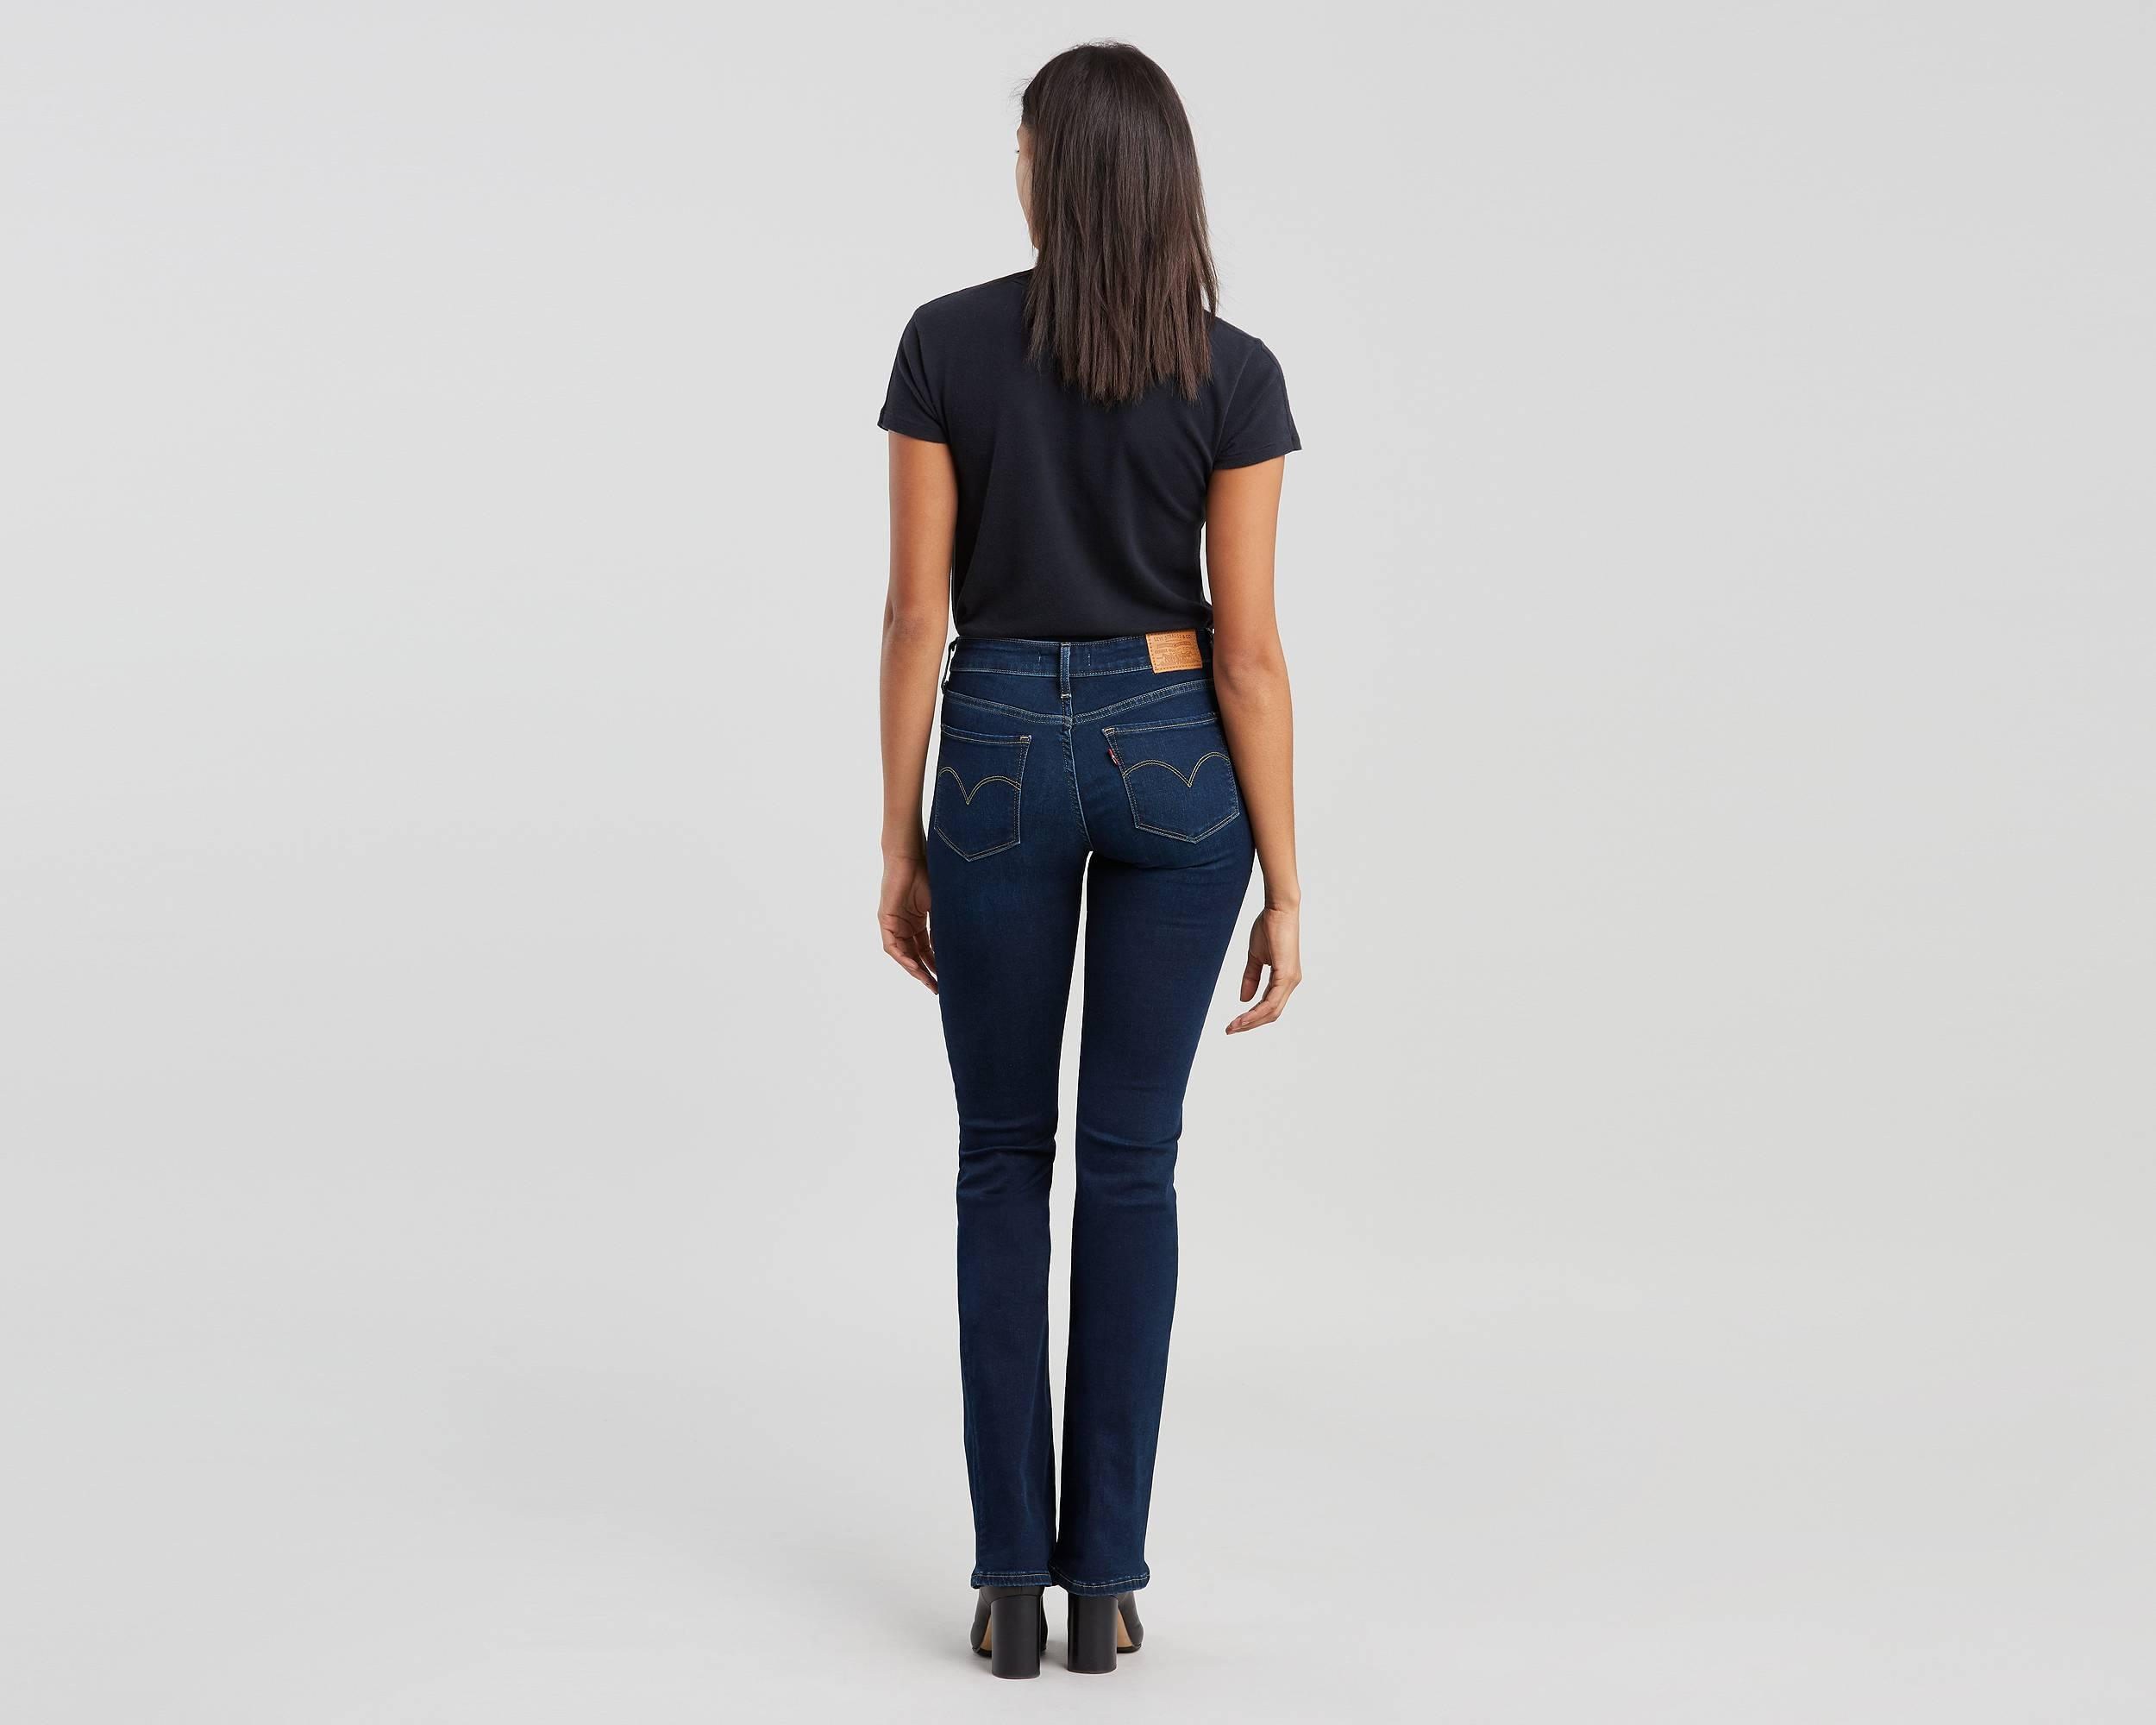 549a7ba0682 715™ Bootcut Jeans - Levi's Jeans, Jackets & Clothing